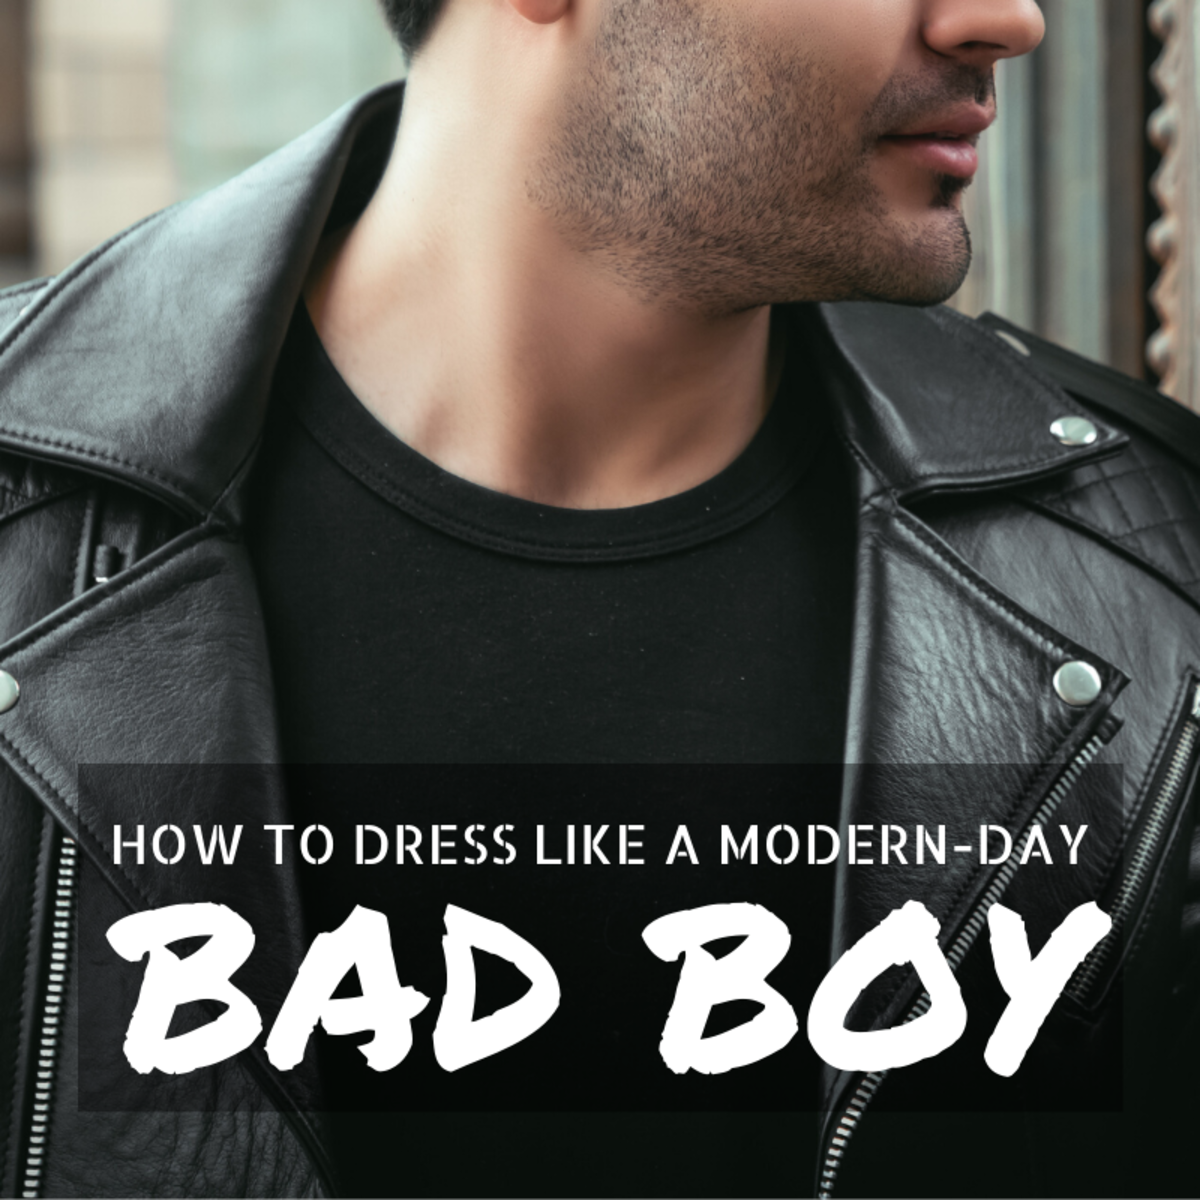 Learn how to get the bad boy look—it's simpler than you think.